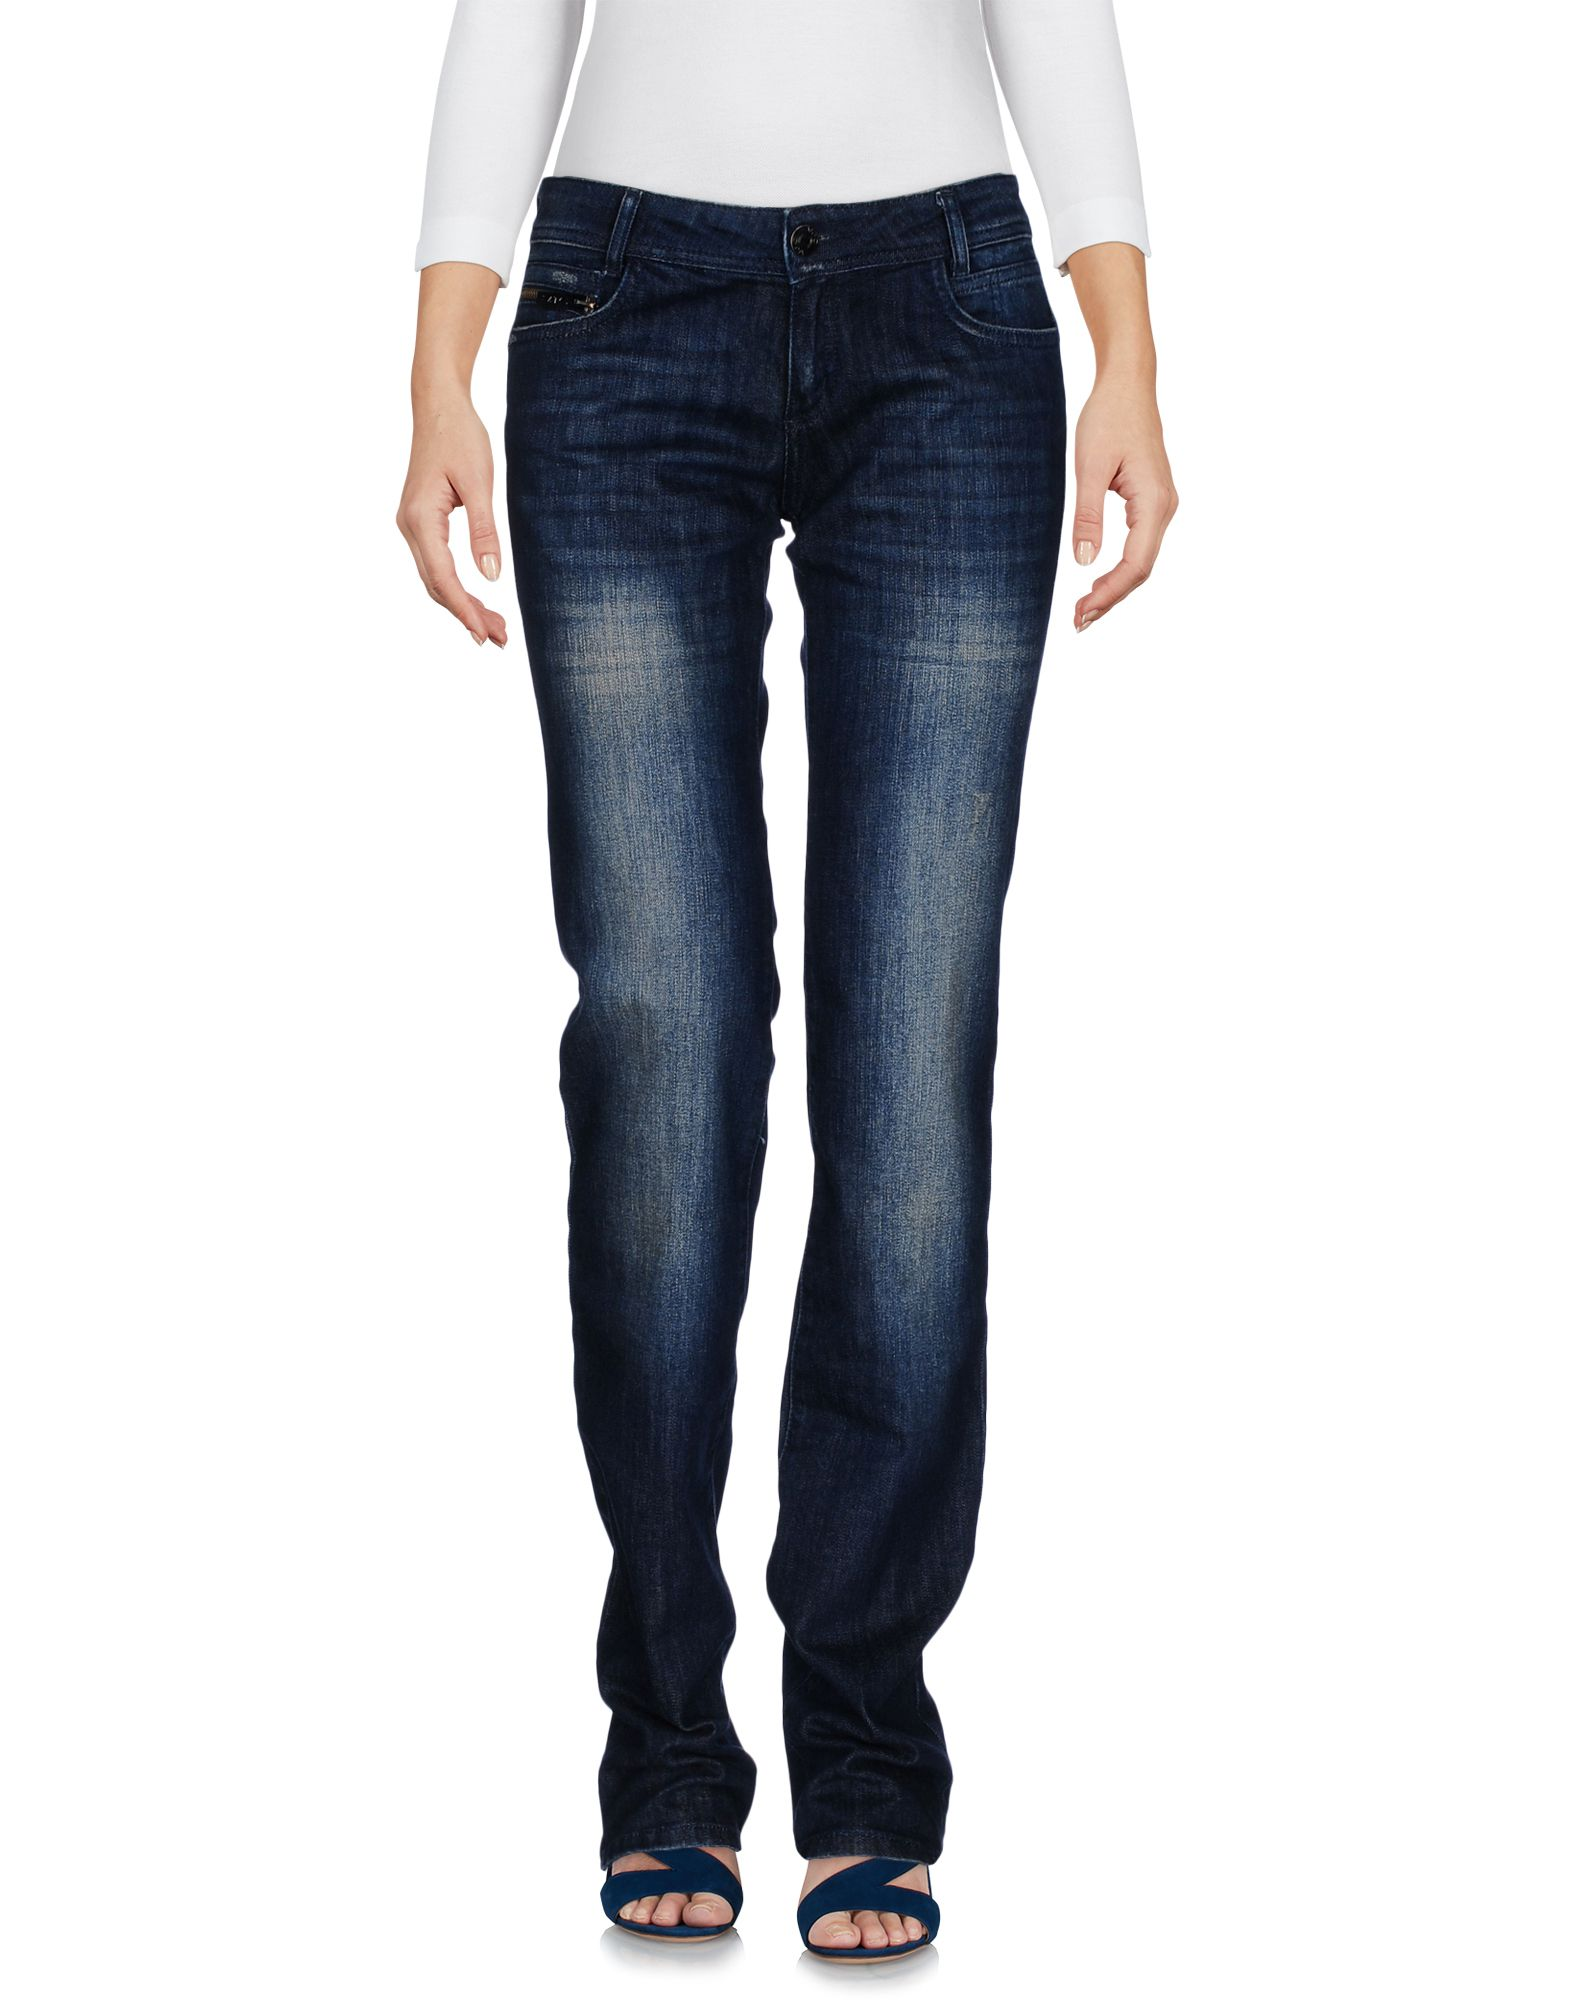 Versace Jeans Couture Women - shop online shirts, jackets, belts and more  at YOOX United States